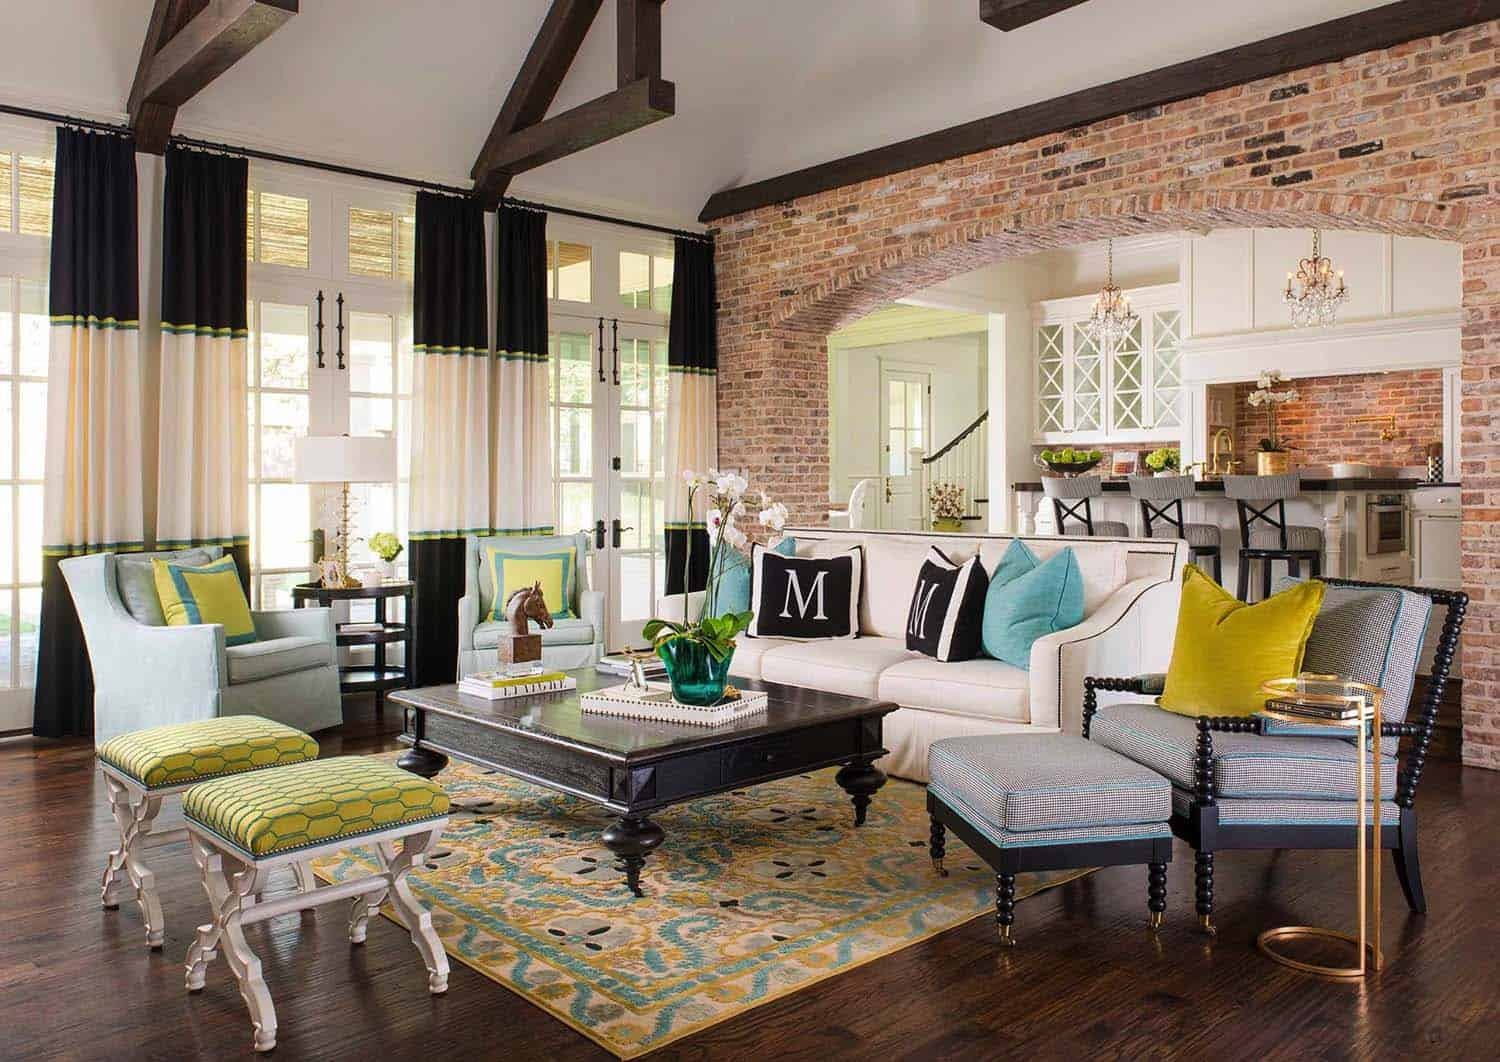 Delightful farmhouse-inspired residence in Texas with ...